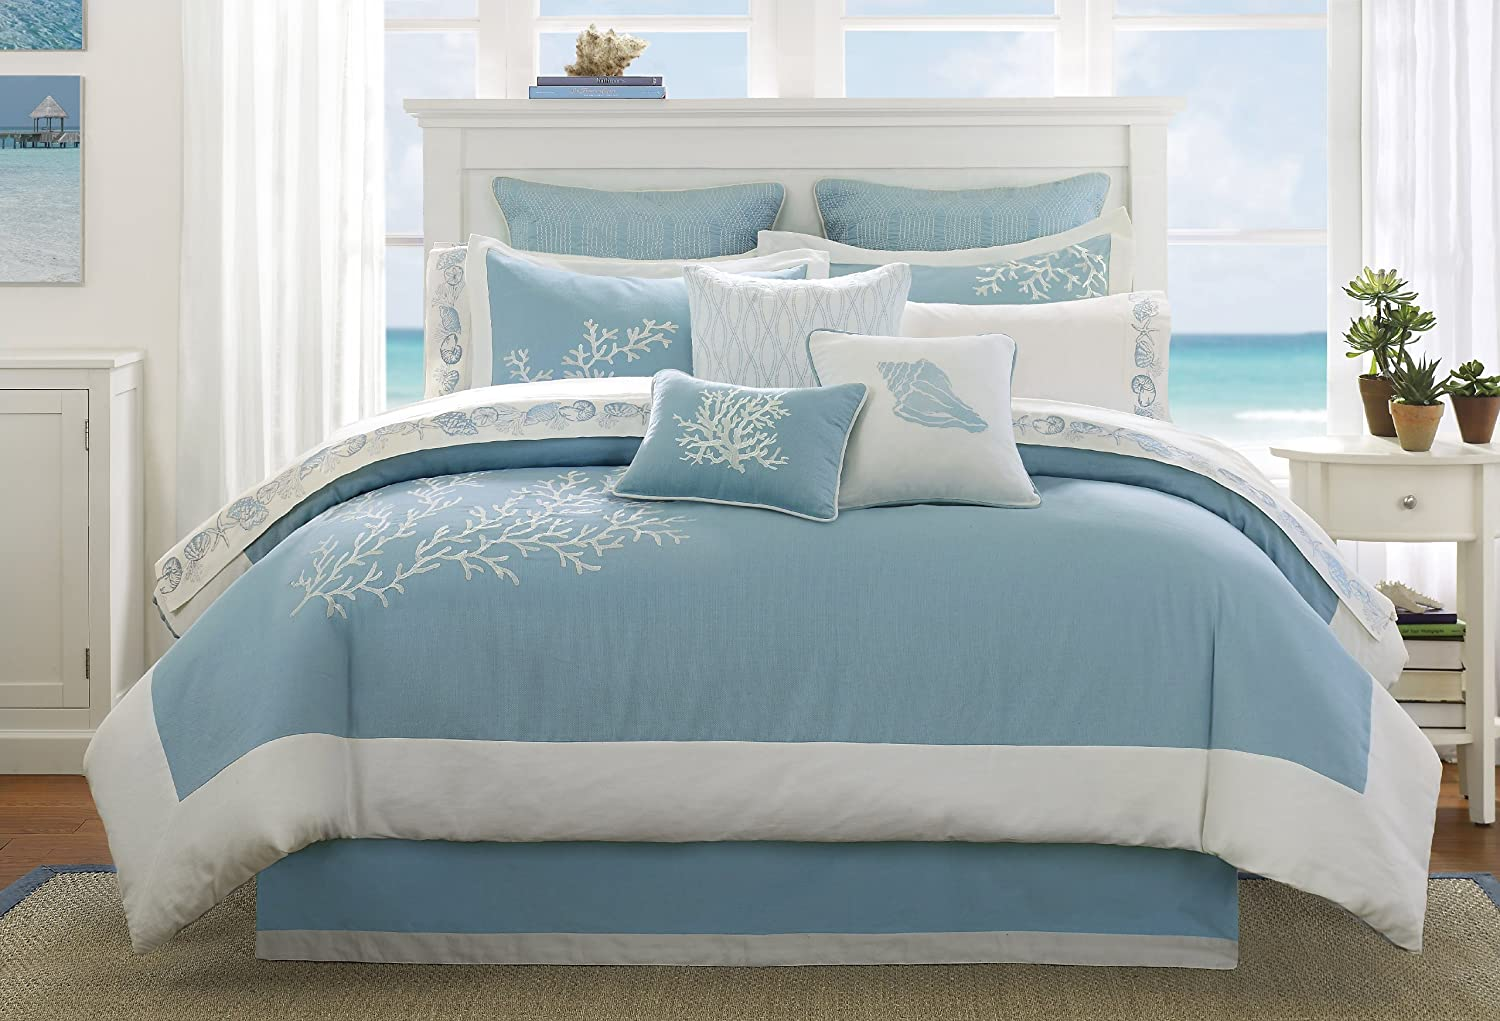 Harbor House Coastline Queen Size Bed Comforter Set - Blue, Jacquard Coastal Coral – 4 Pieces Bedding Sets